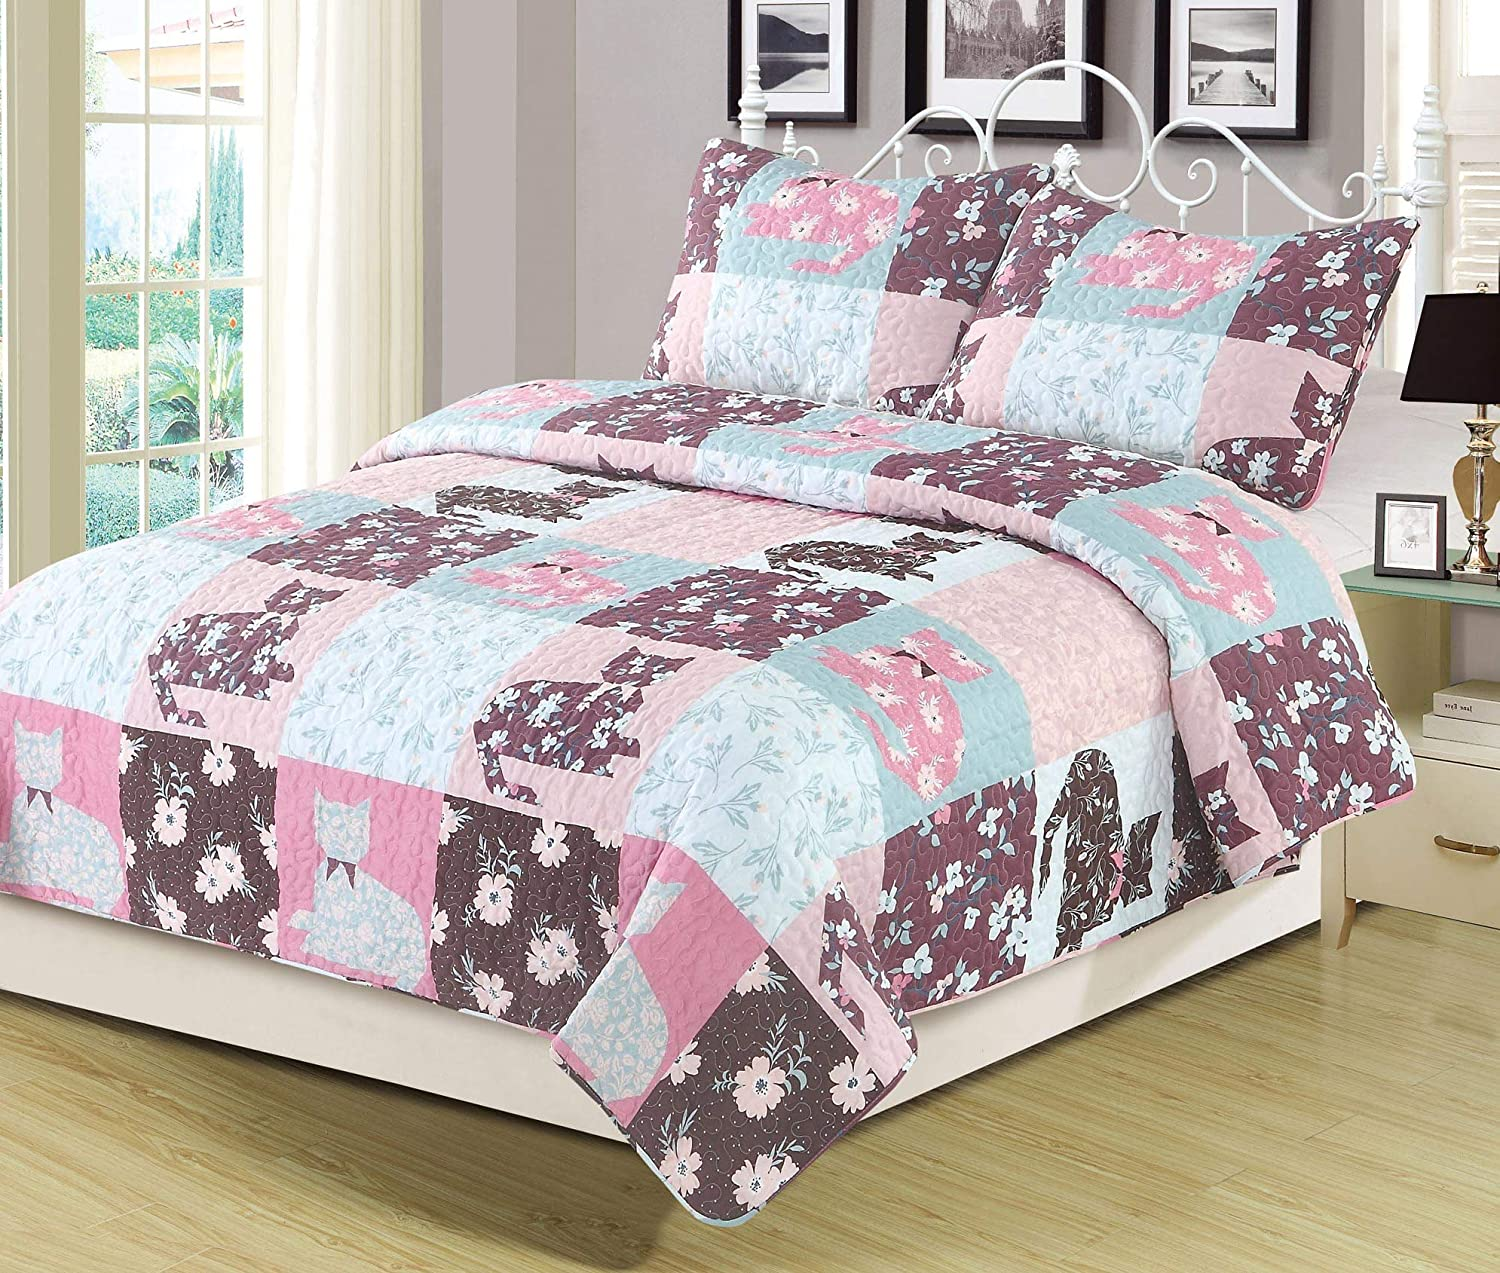 or King Quilt Floral Patchwork Cats Bedspread Bedding Set Twin Full//Queen